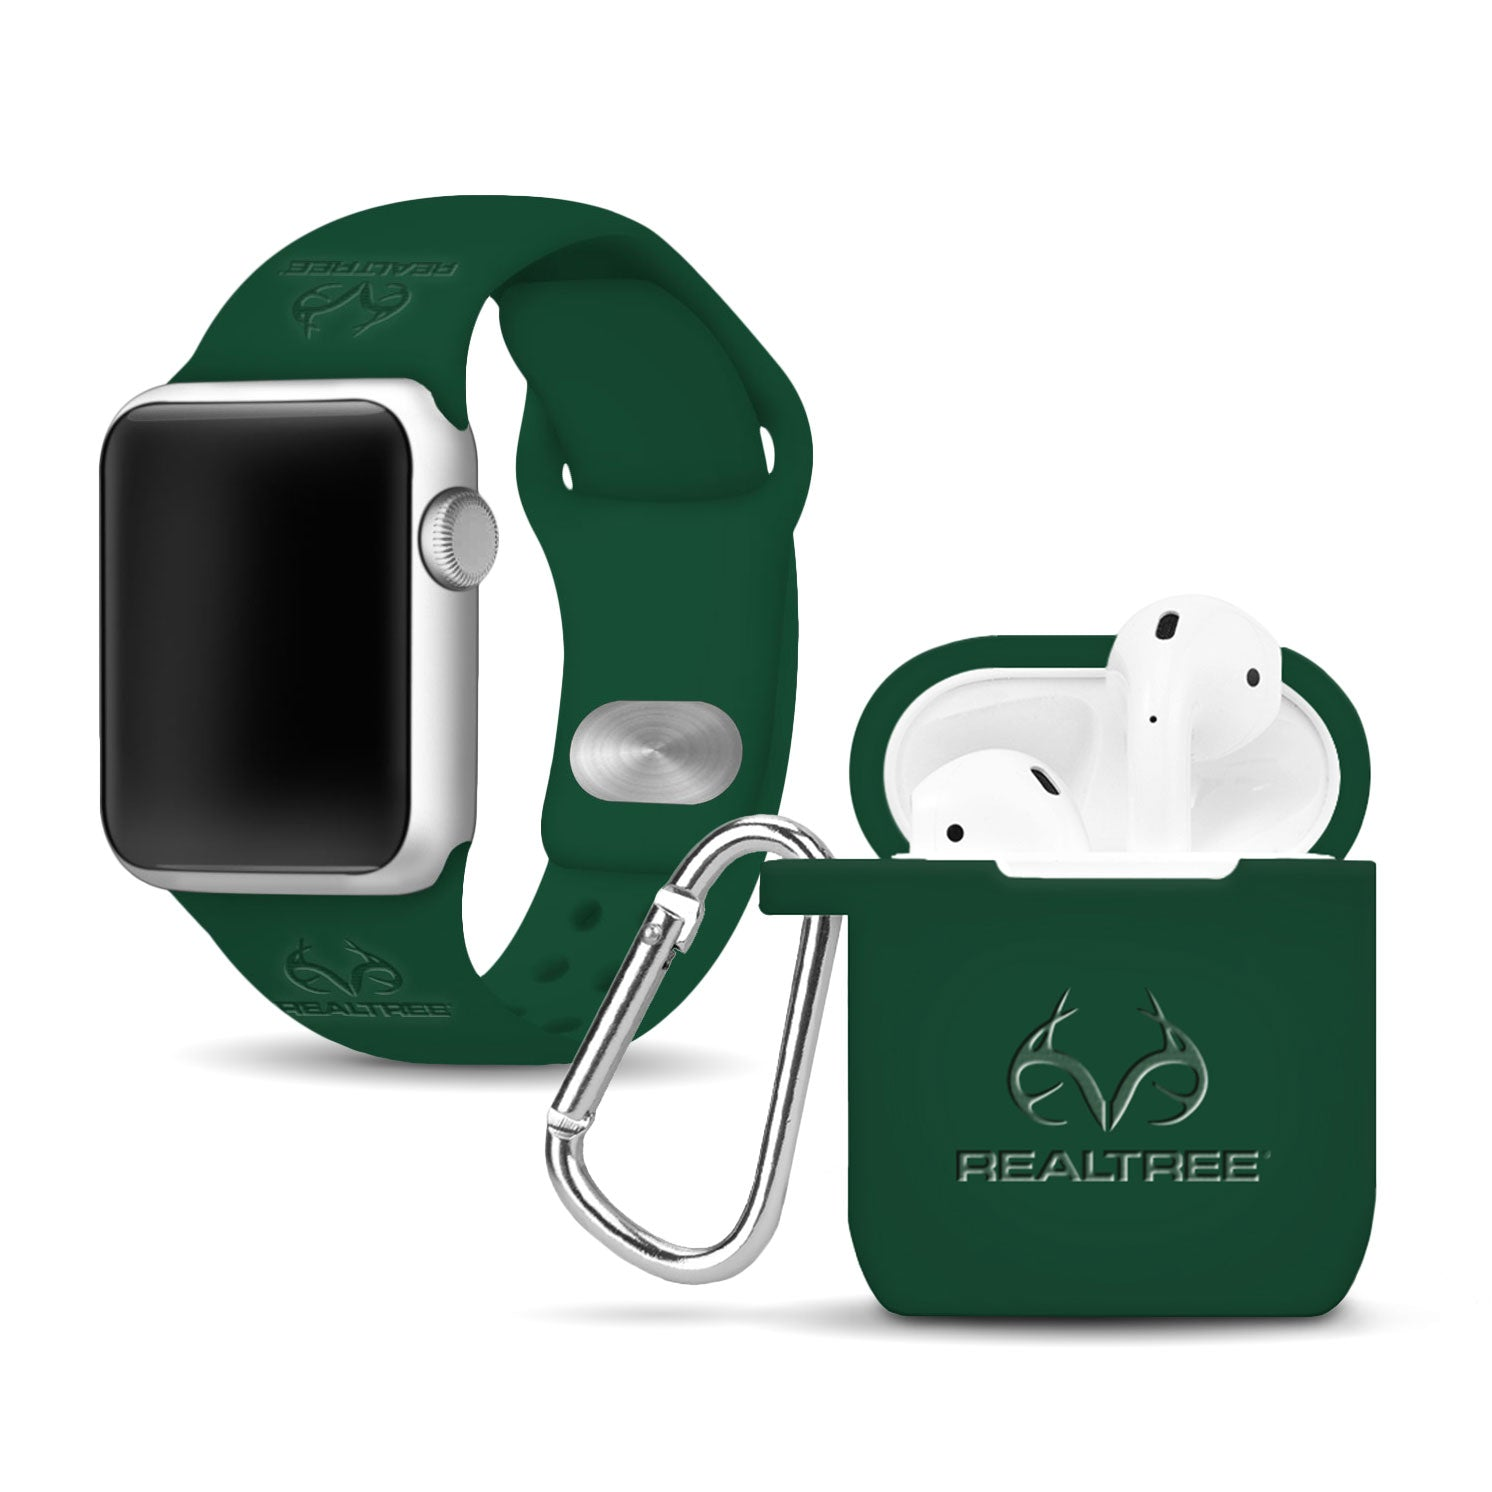 Realtree Debossed Apple Combo Package - AffinityBands